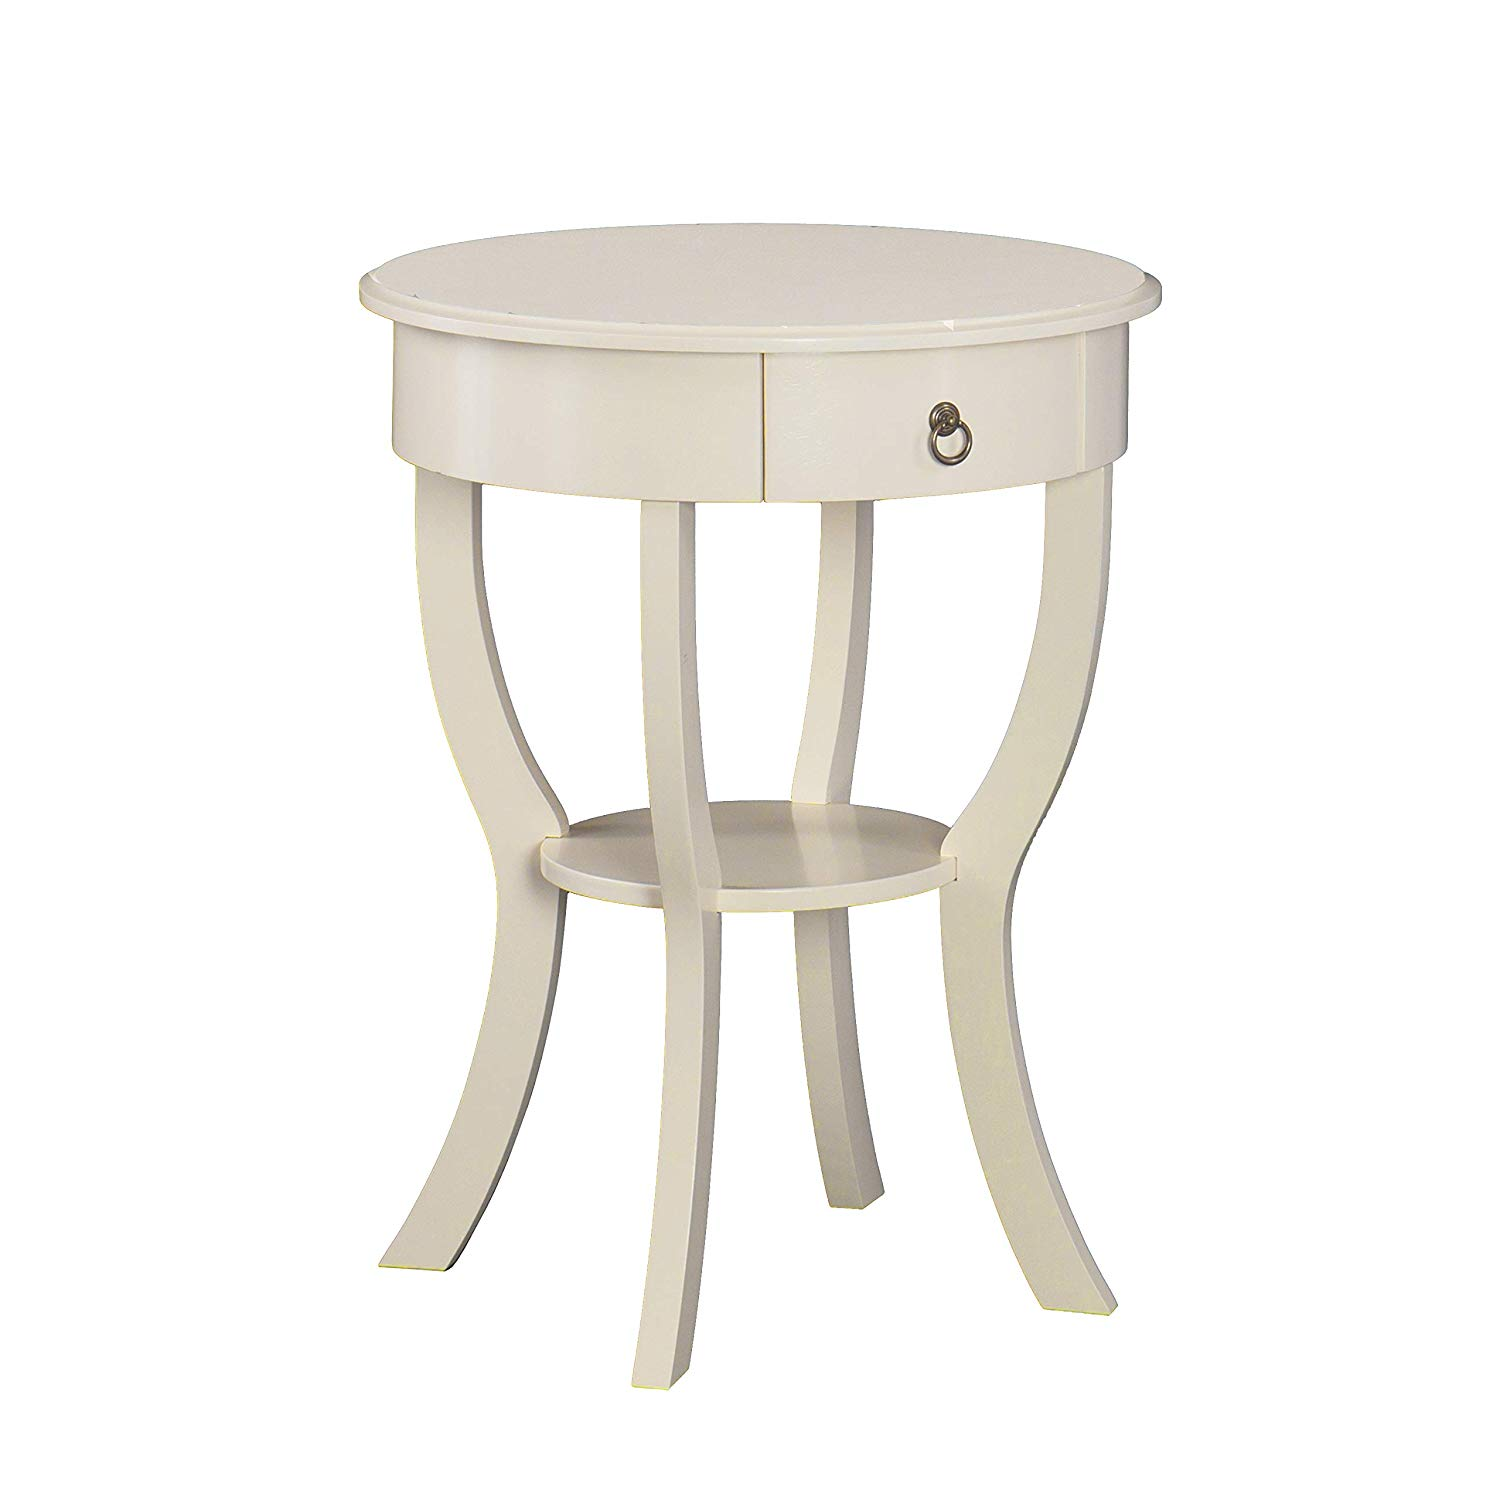 wood round side table antique white kitchen dining winsome cassie accent with glass top cappuccino finish target vanity grey cabinet acrylic console shelf tables for living room